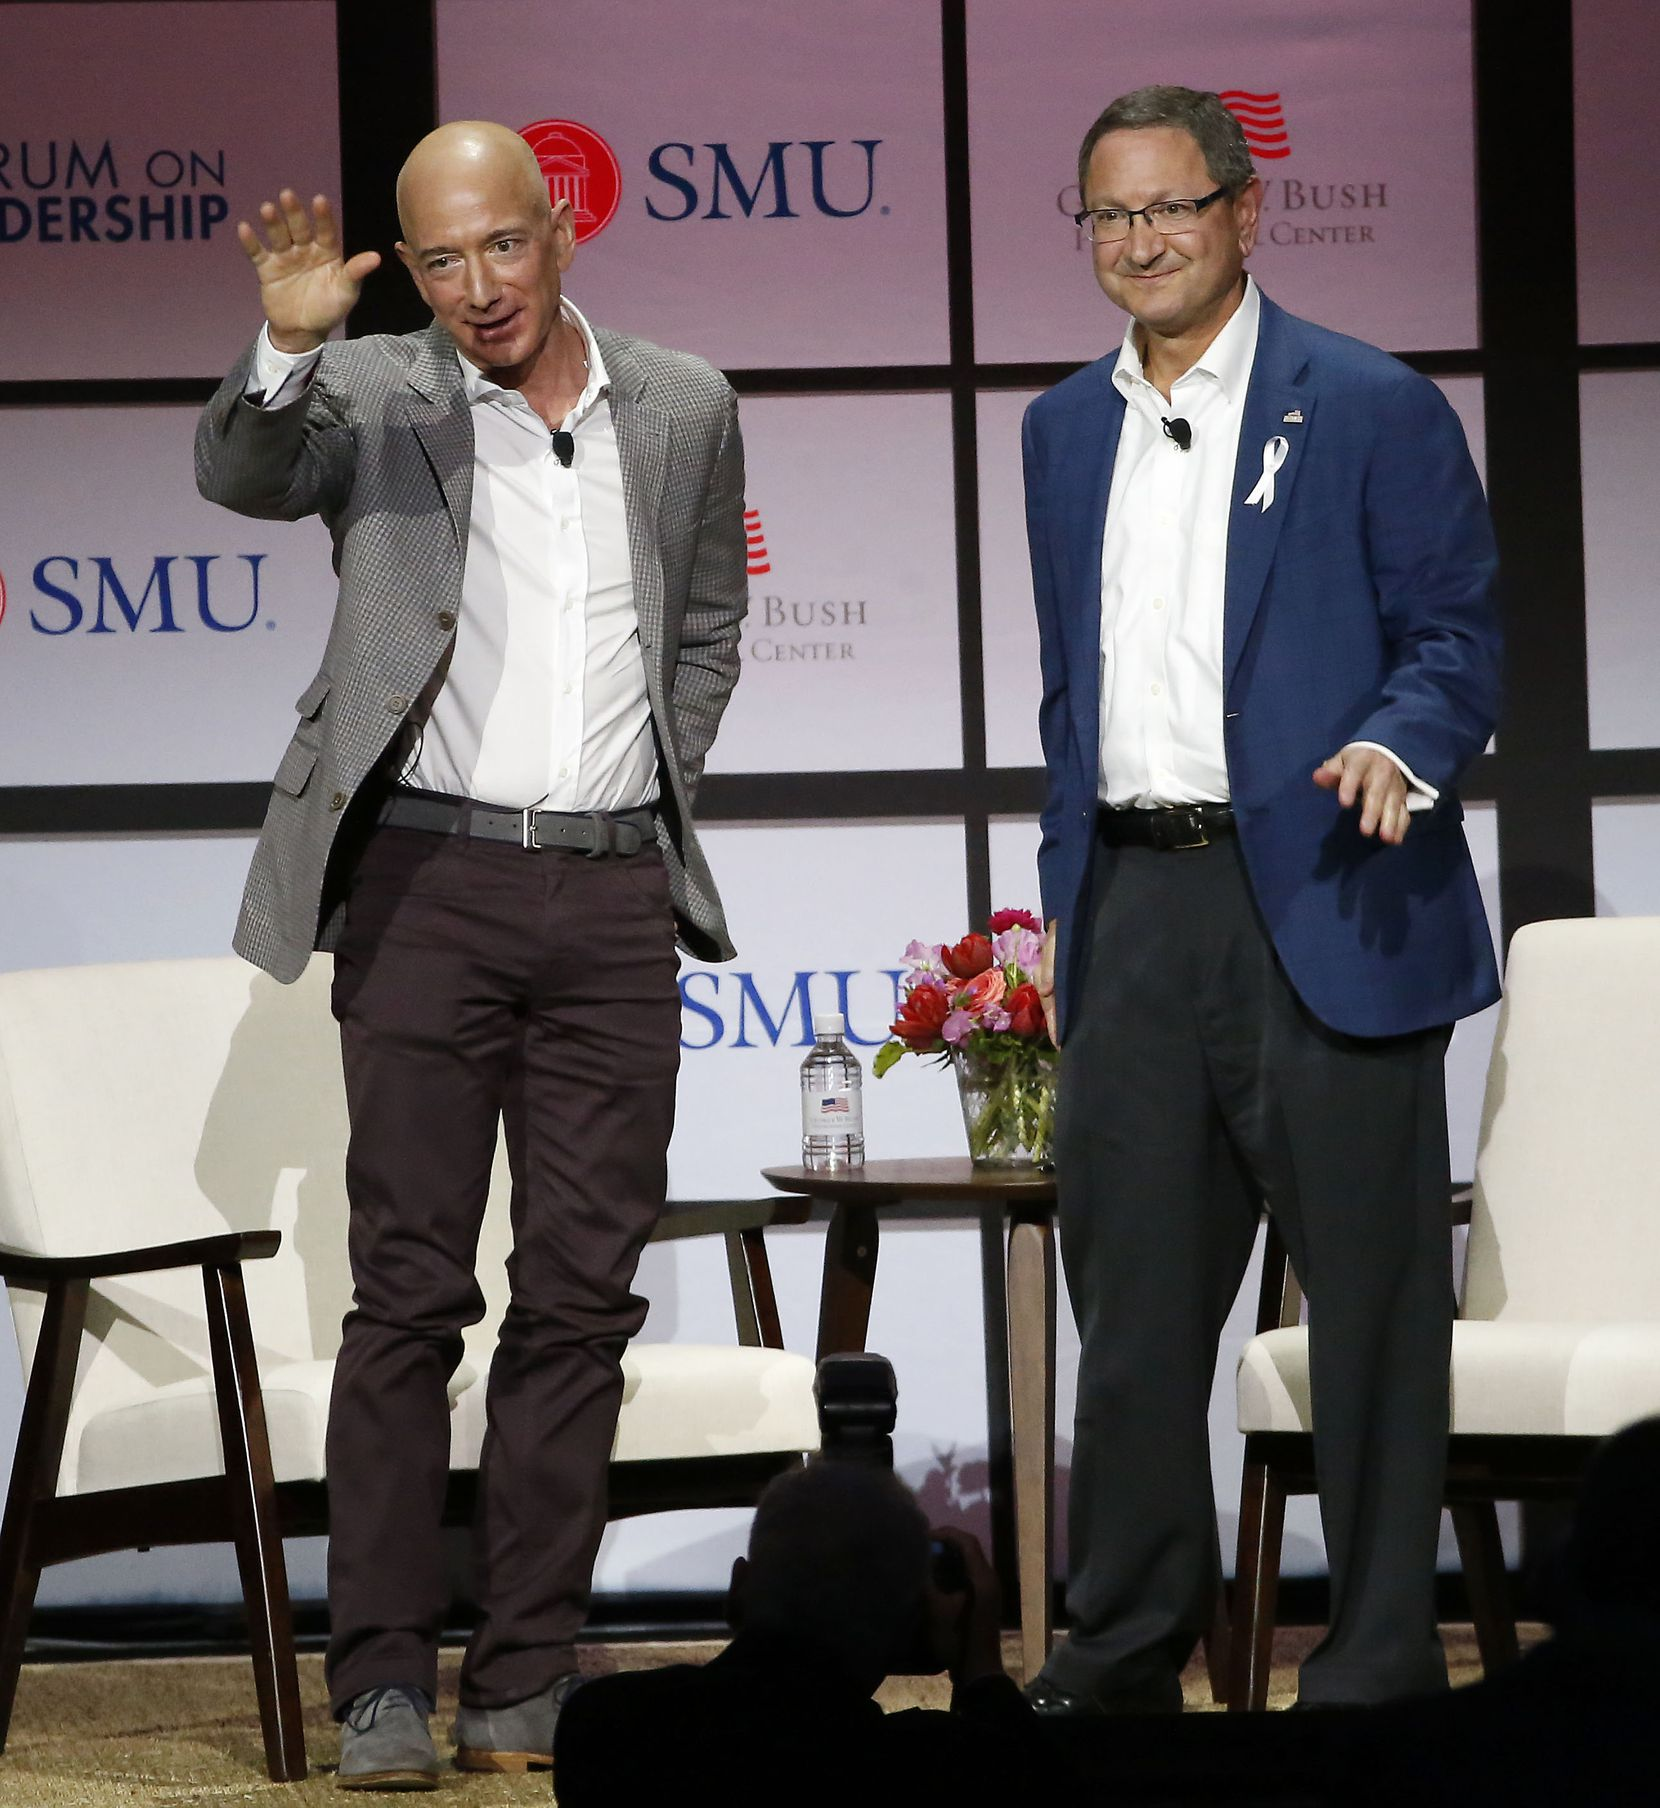 Jeff Bezos, Chairman and CEO of Amazon, waves to the crowd next to Ken Hersh, president and chief executive of the George W. Bush Presidential Center, after a leadership forum in 2018 at the George W. Bush Presidential Center.